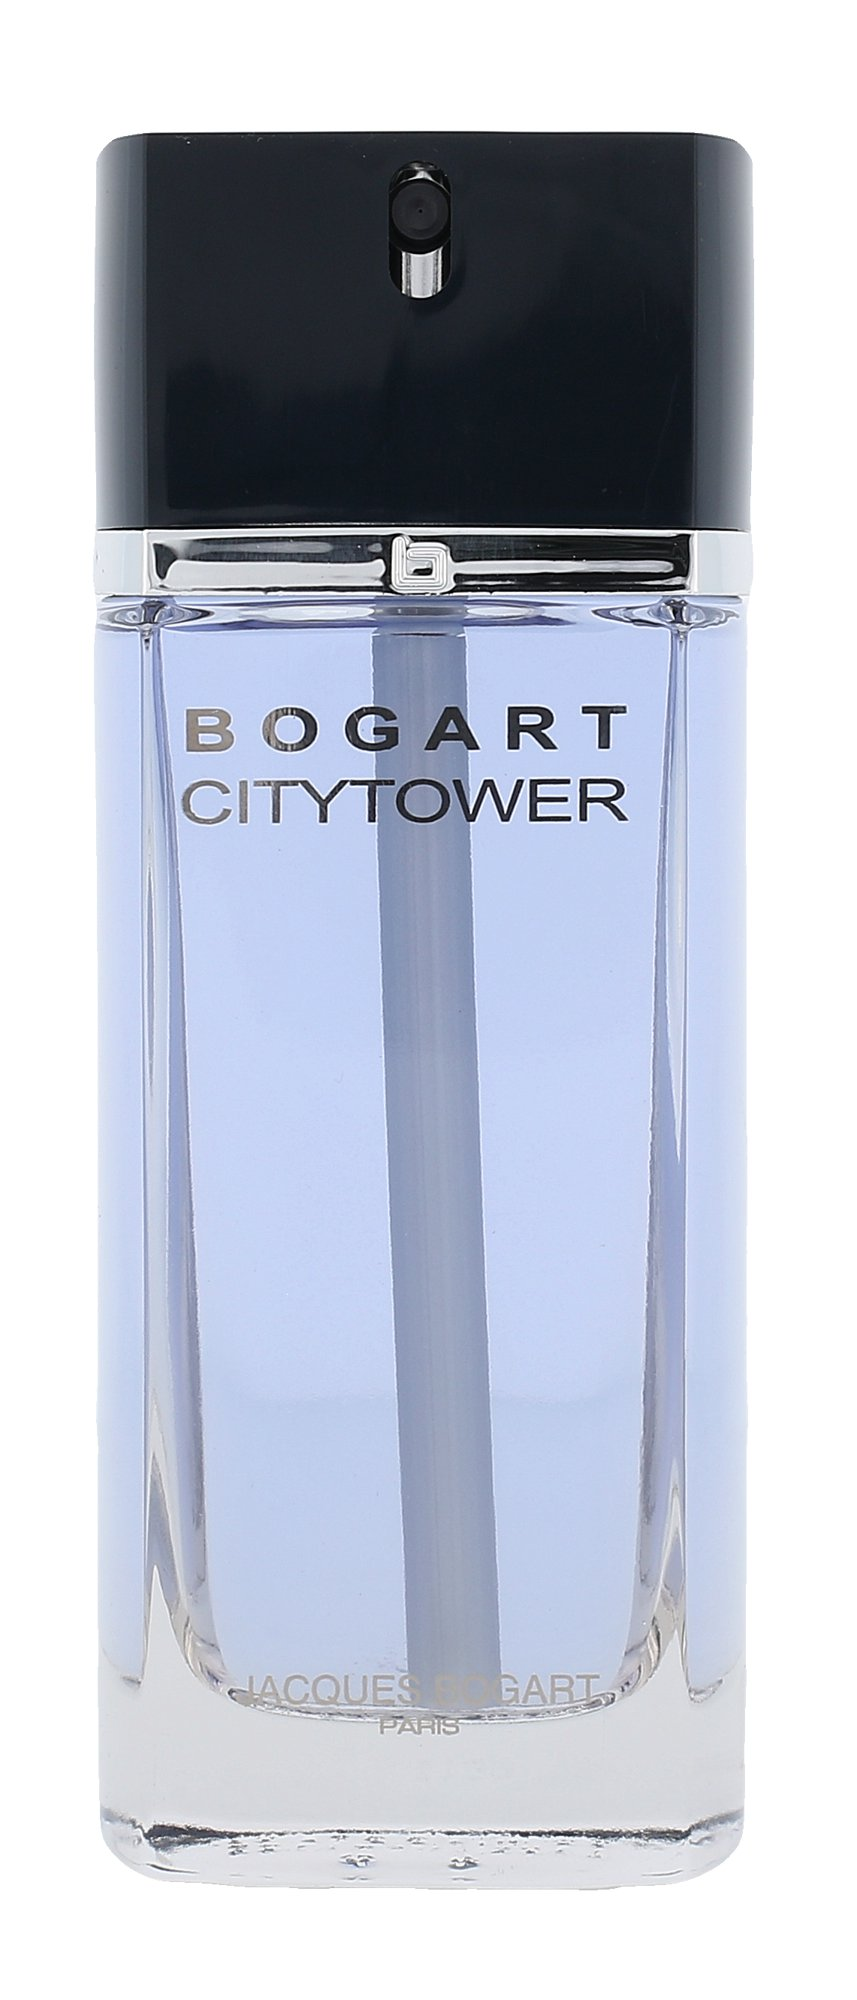 Jacques Bogart Bogart CityTower, edt 100ml - Teszter